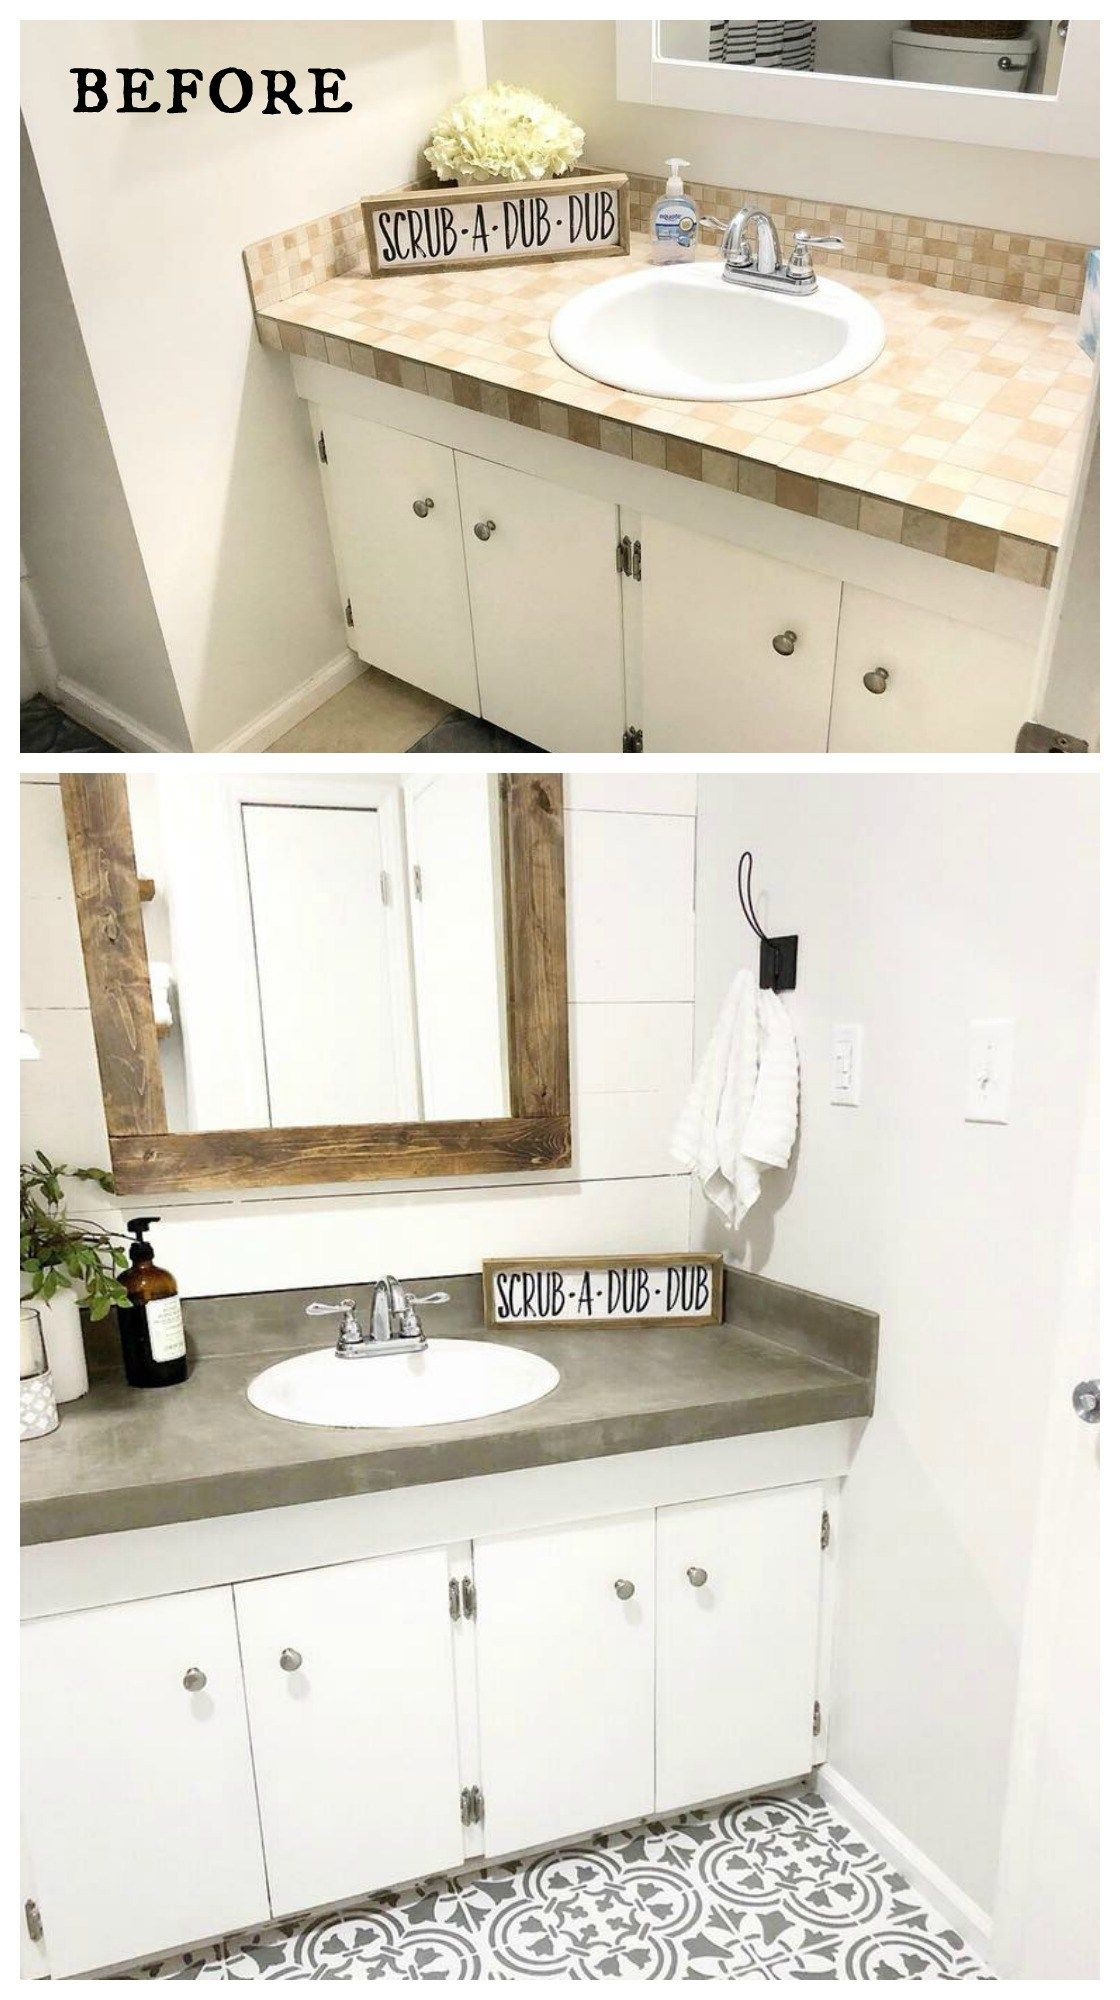 Amazing Before And After Bathroom Renovations And Transformations Sometimes All You Need Is Some Bathroom Flooring Options Bathroom Makeover Mold In Bathroom